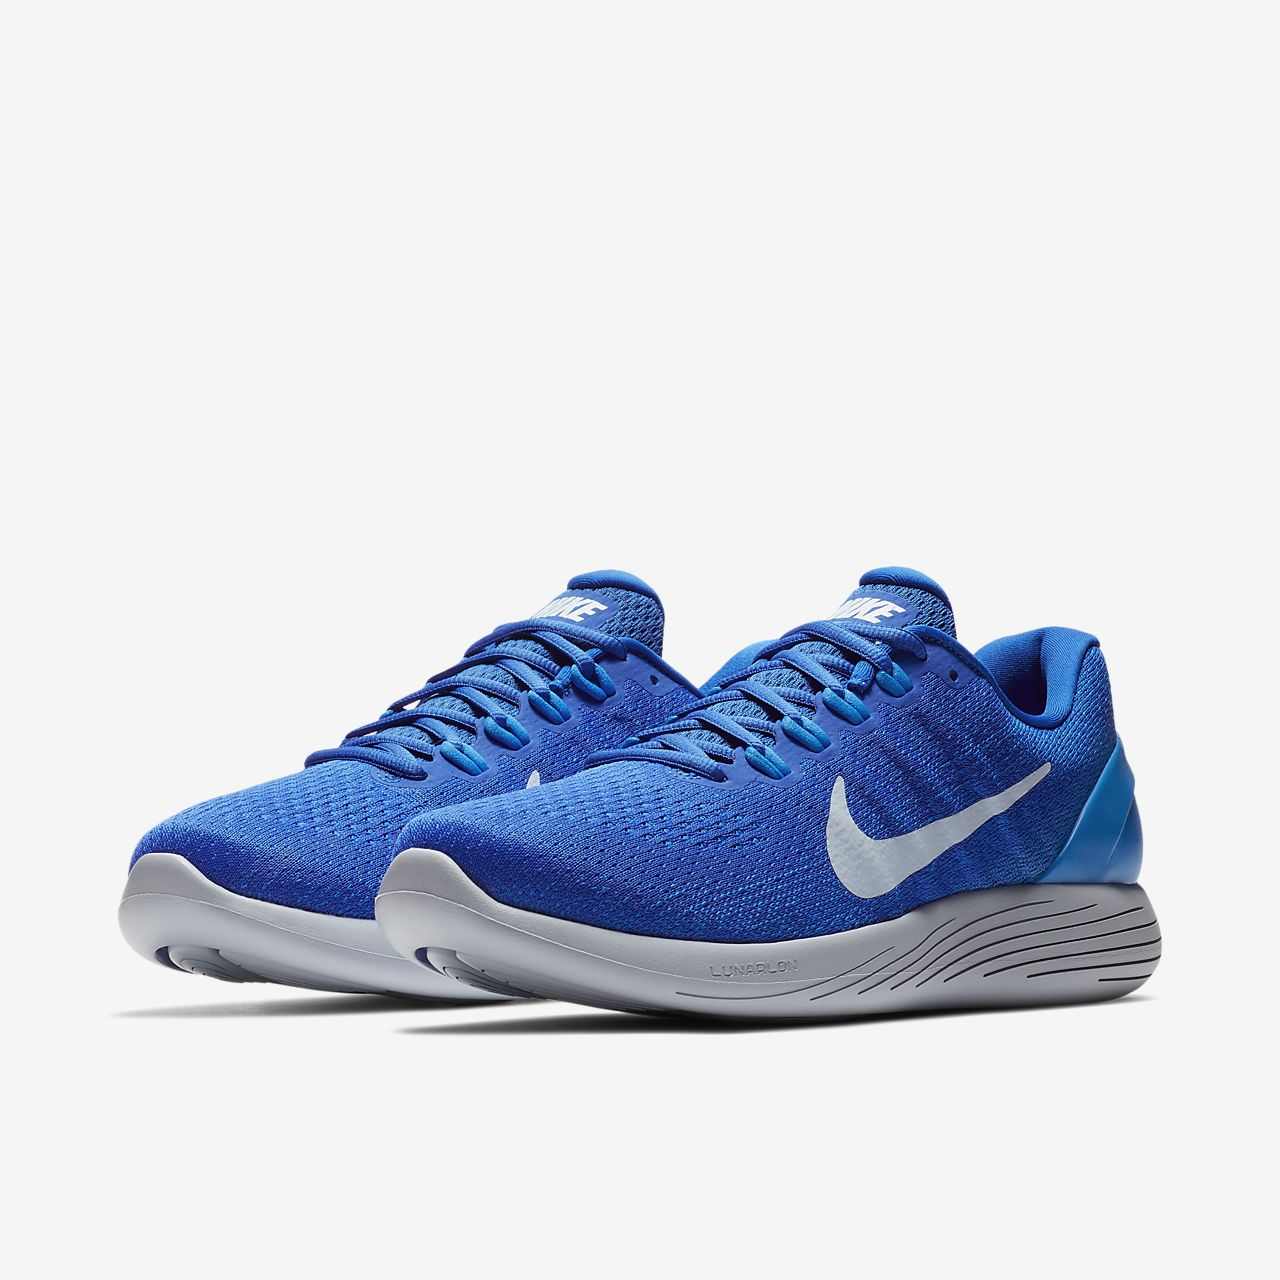 Nike Lunarglide 4 12 Mens Short date de sortie réduction Finishline v45Q5Nd